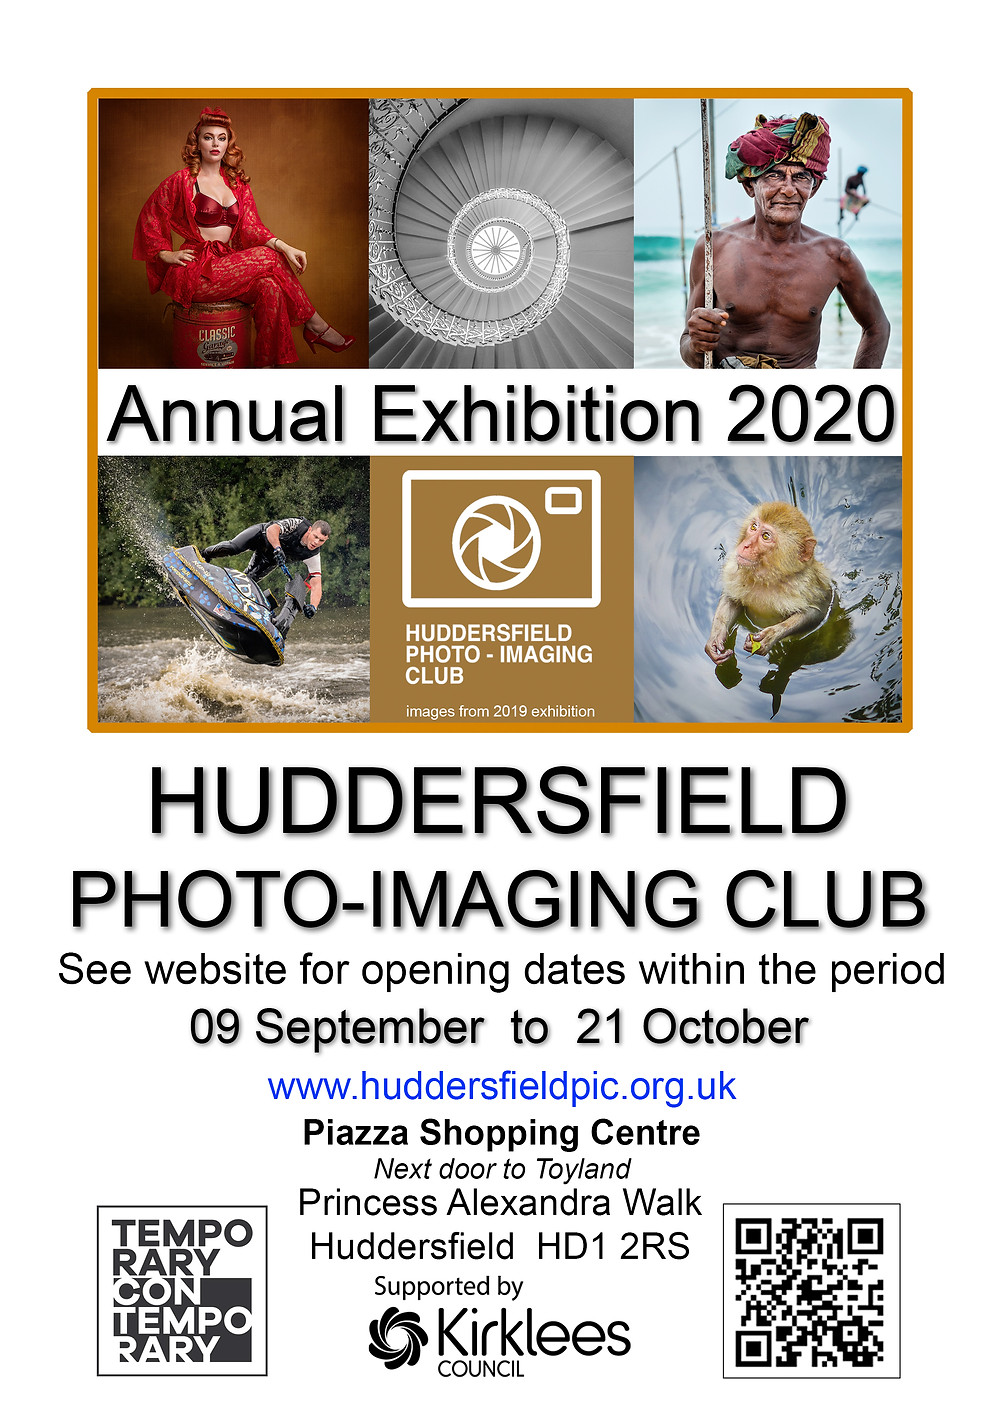 HPIC 2020 Annual Exhibition poster